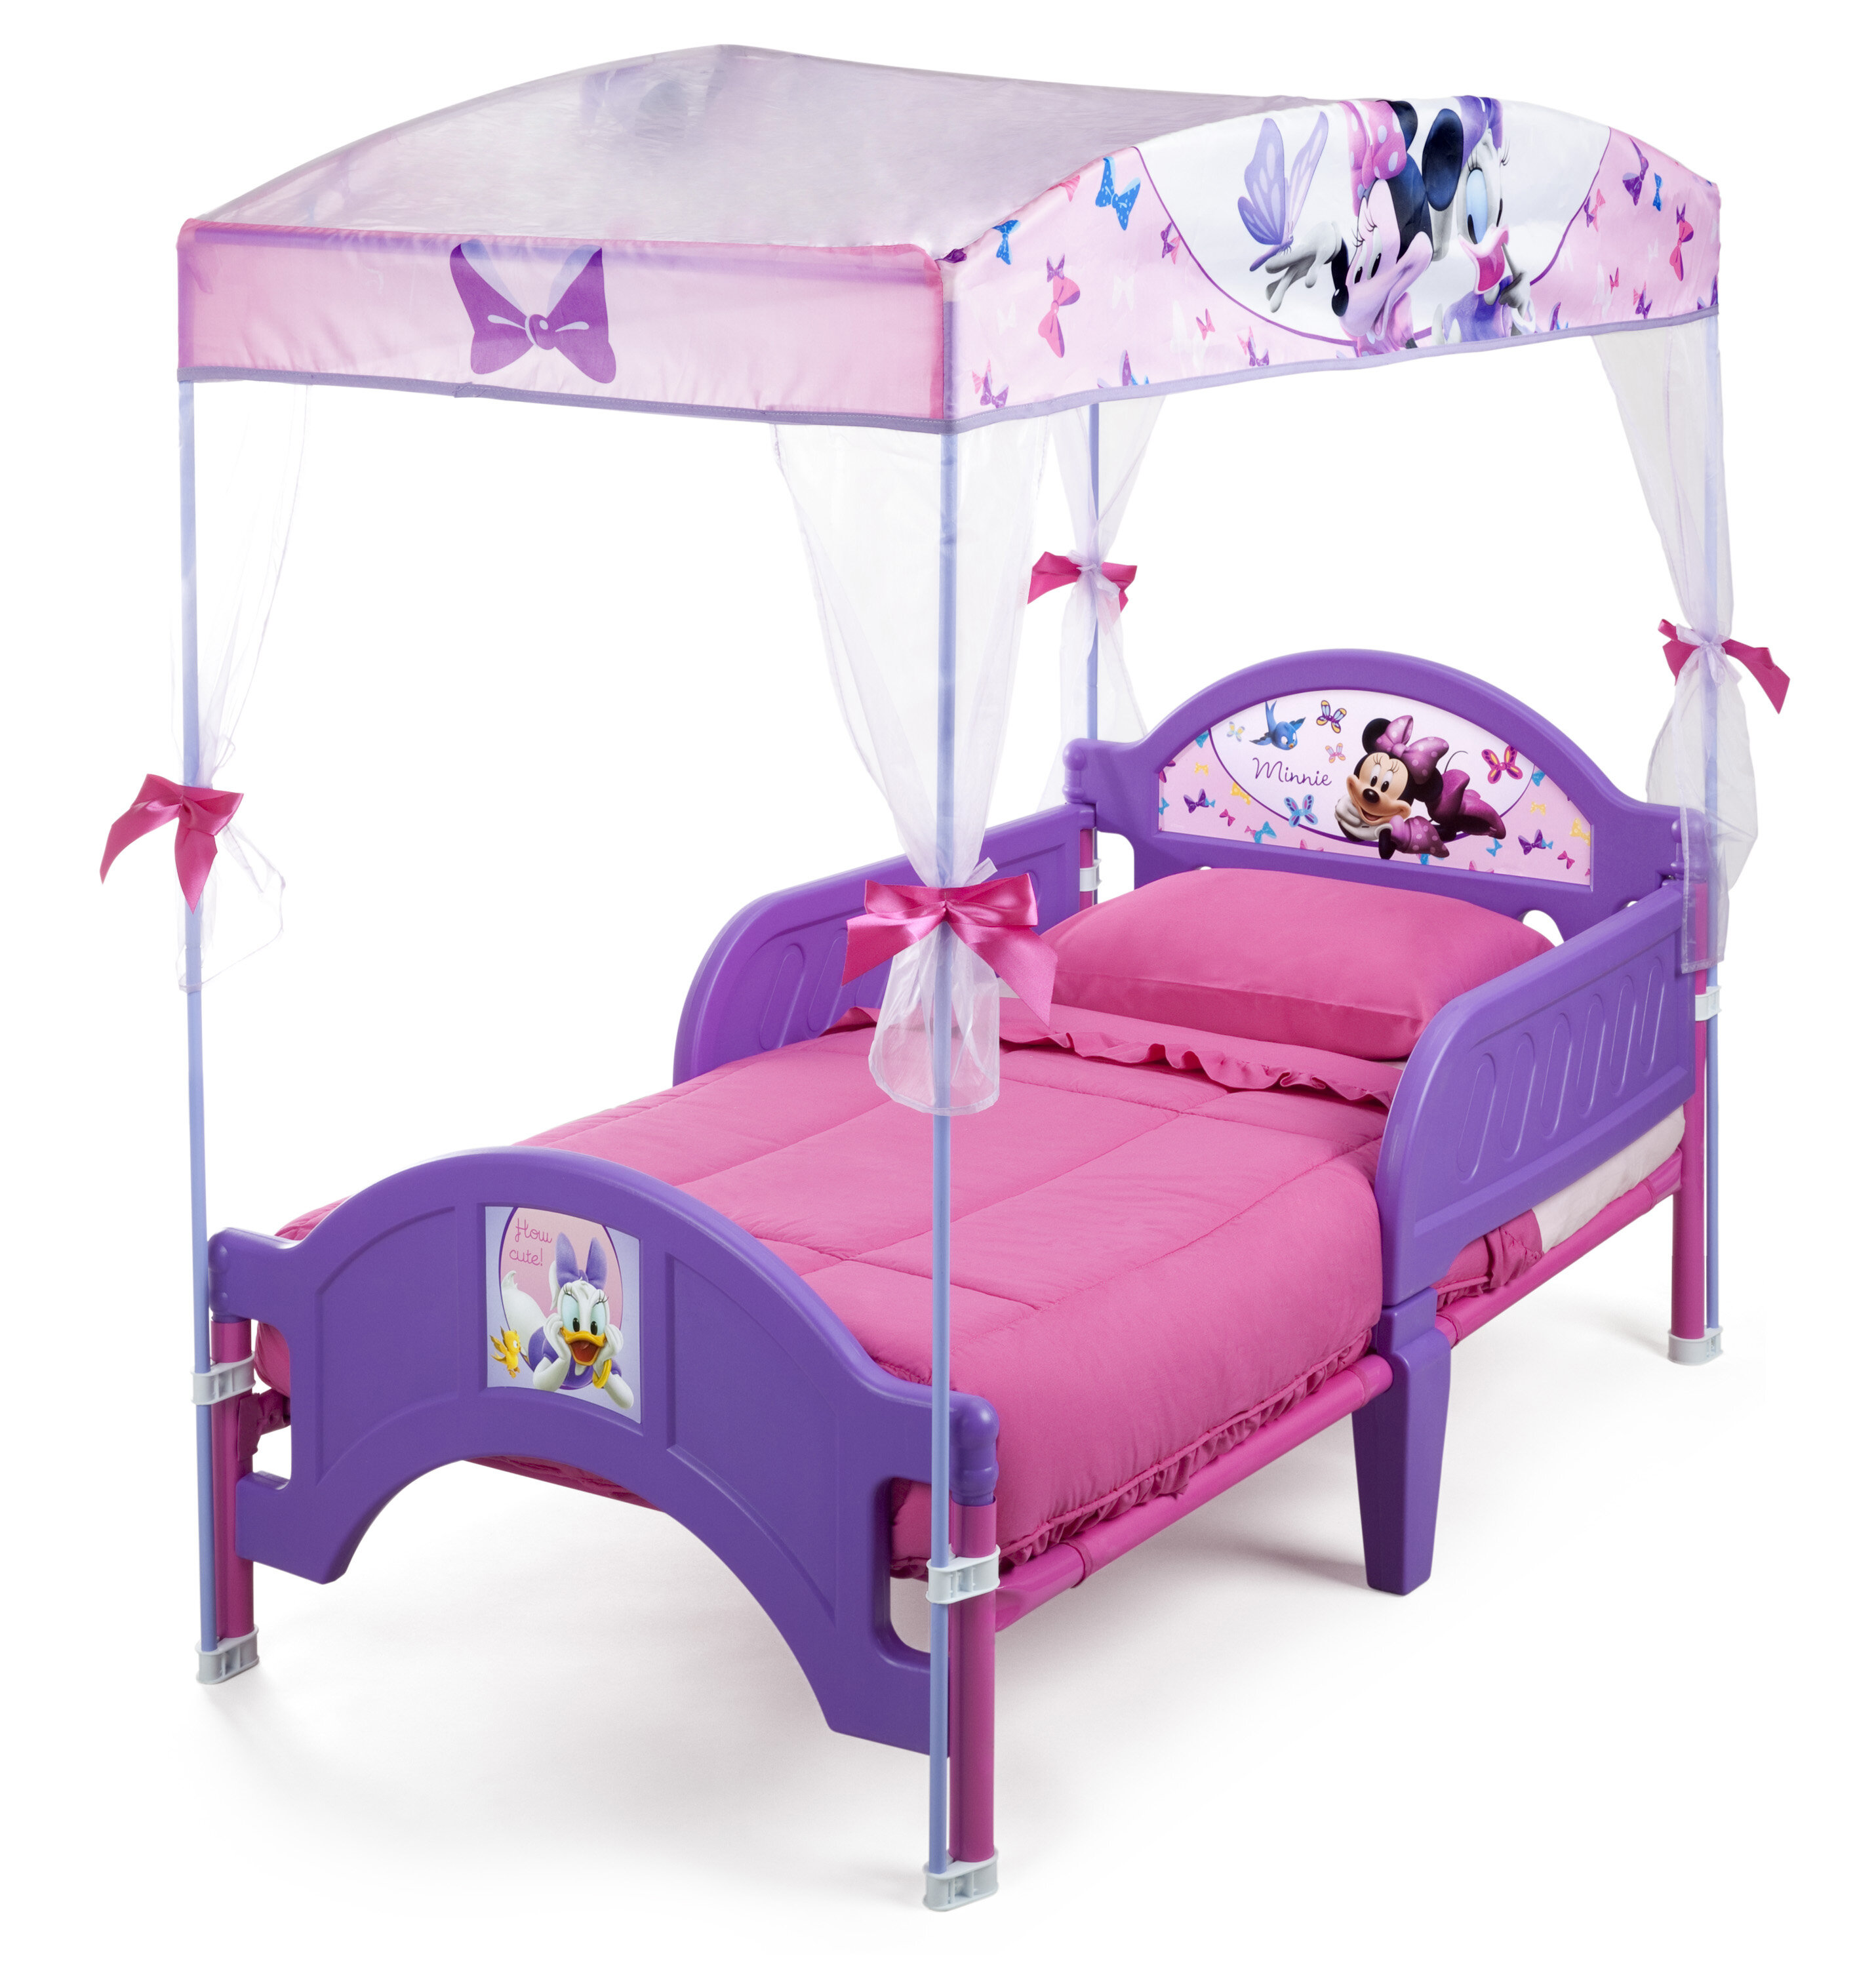 half off 97f94 69809 Disney Minnie Mouse Bow-tique Convertible Toddler Bed